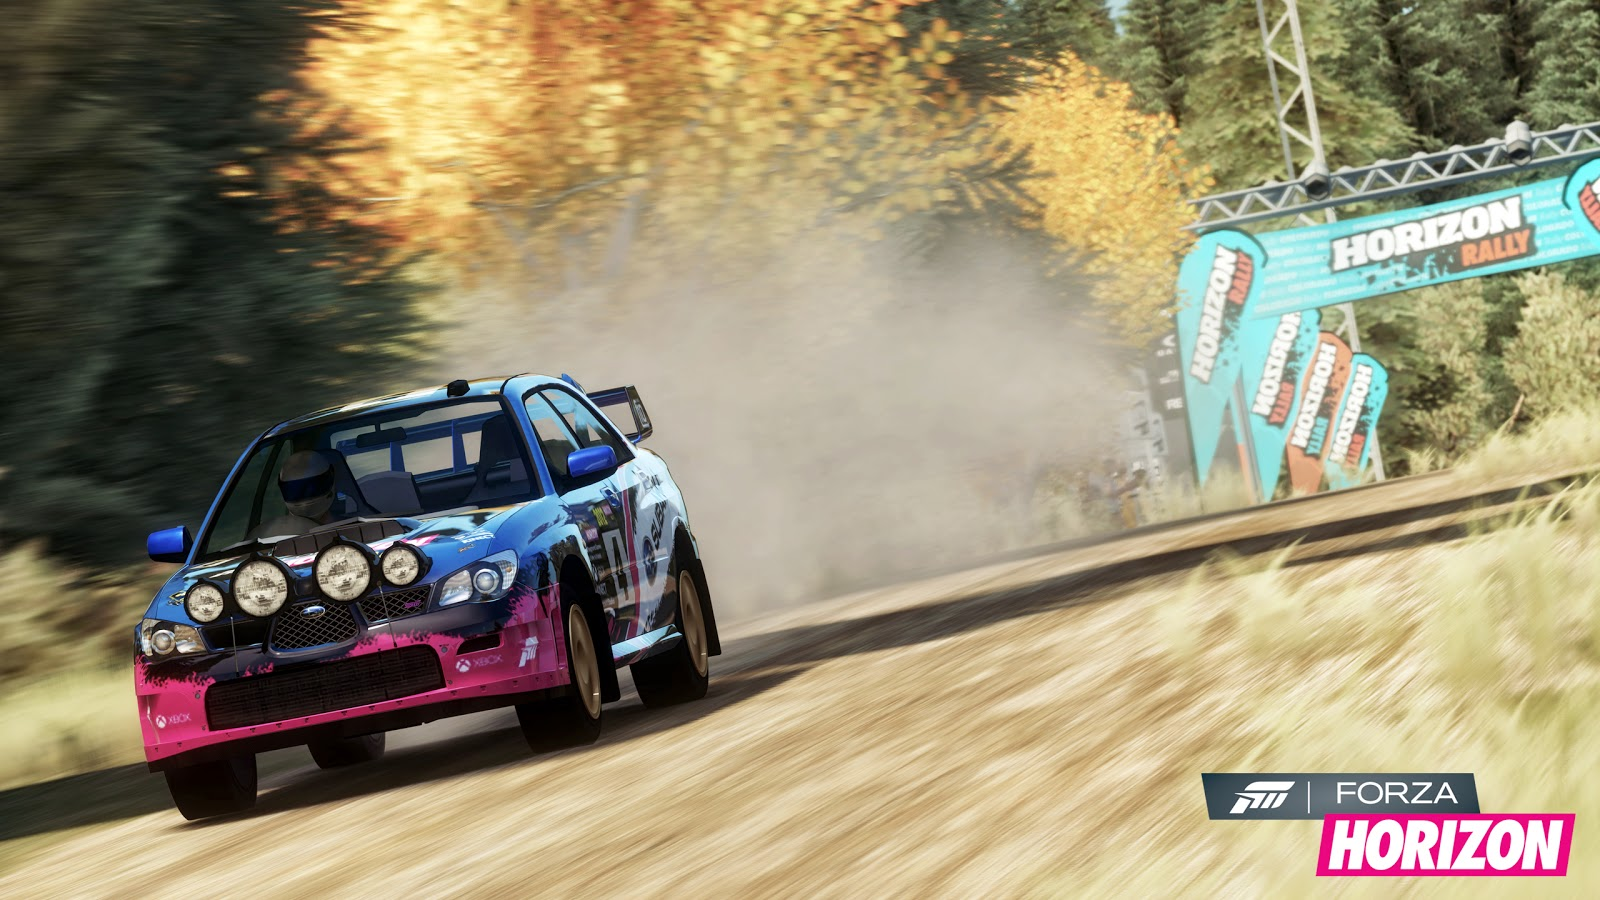 Forza Horizon HD & Widescreen Wallpaper 0.639503202258091